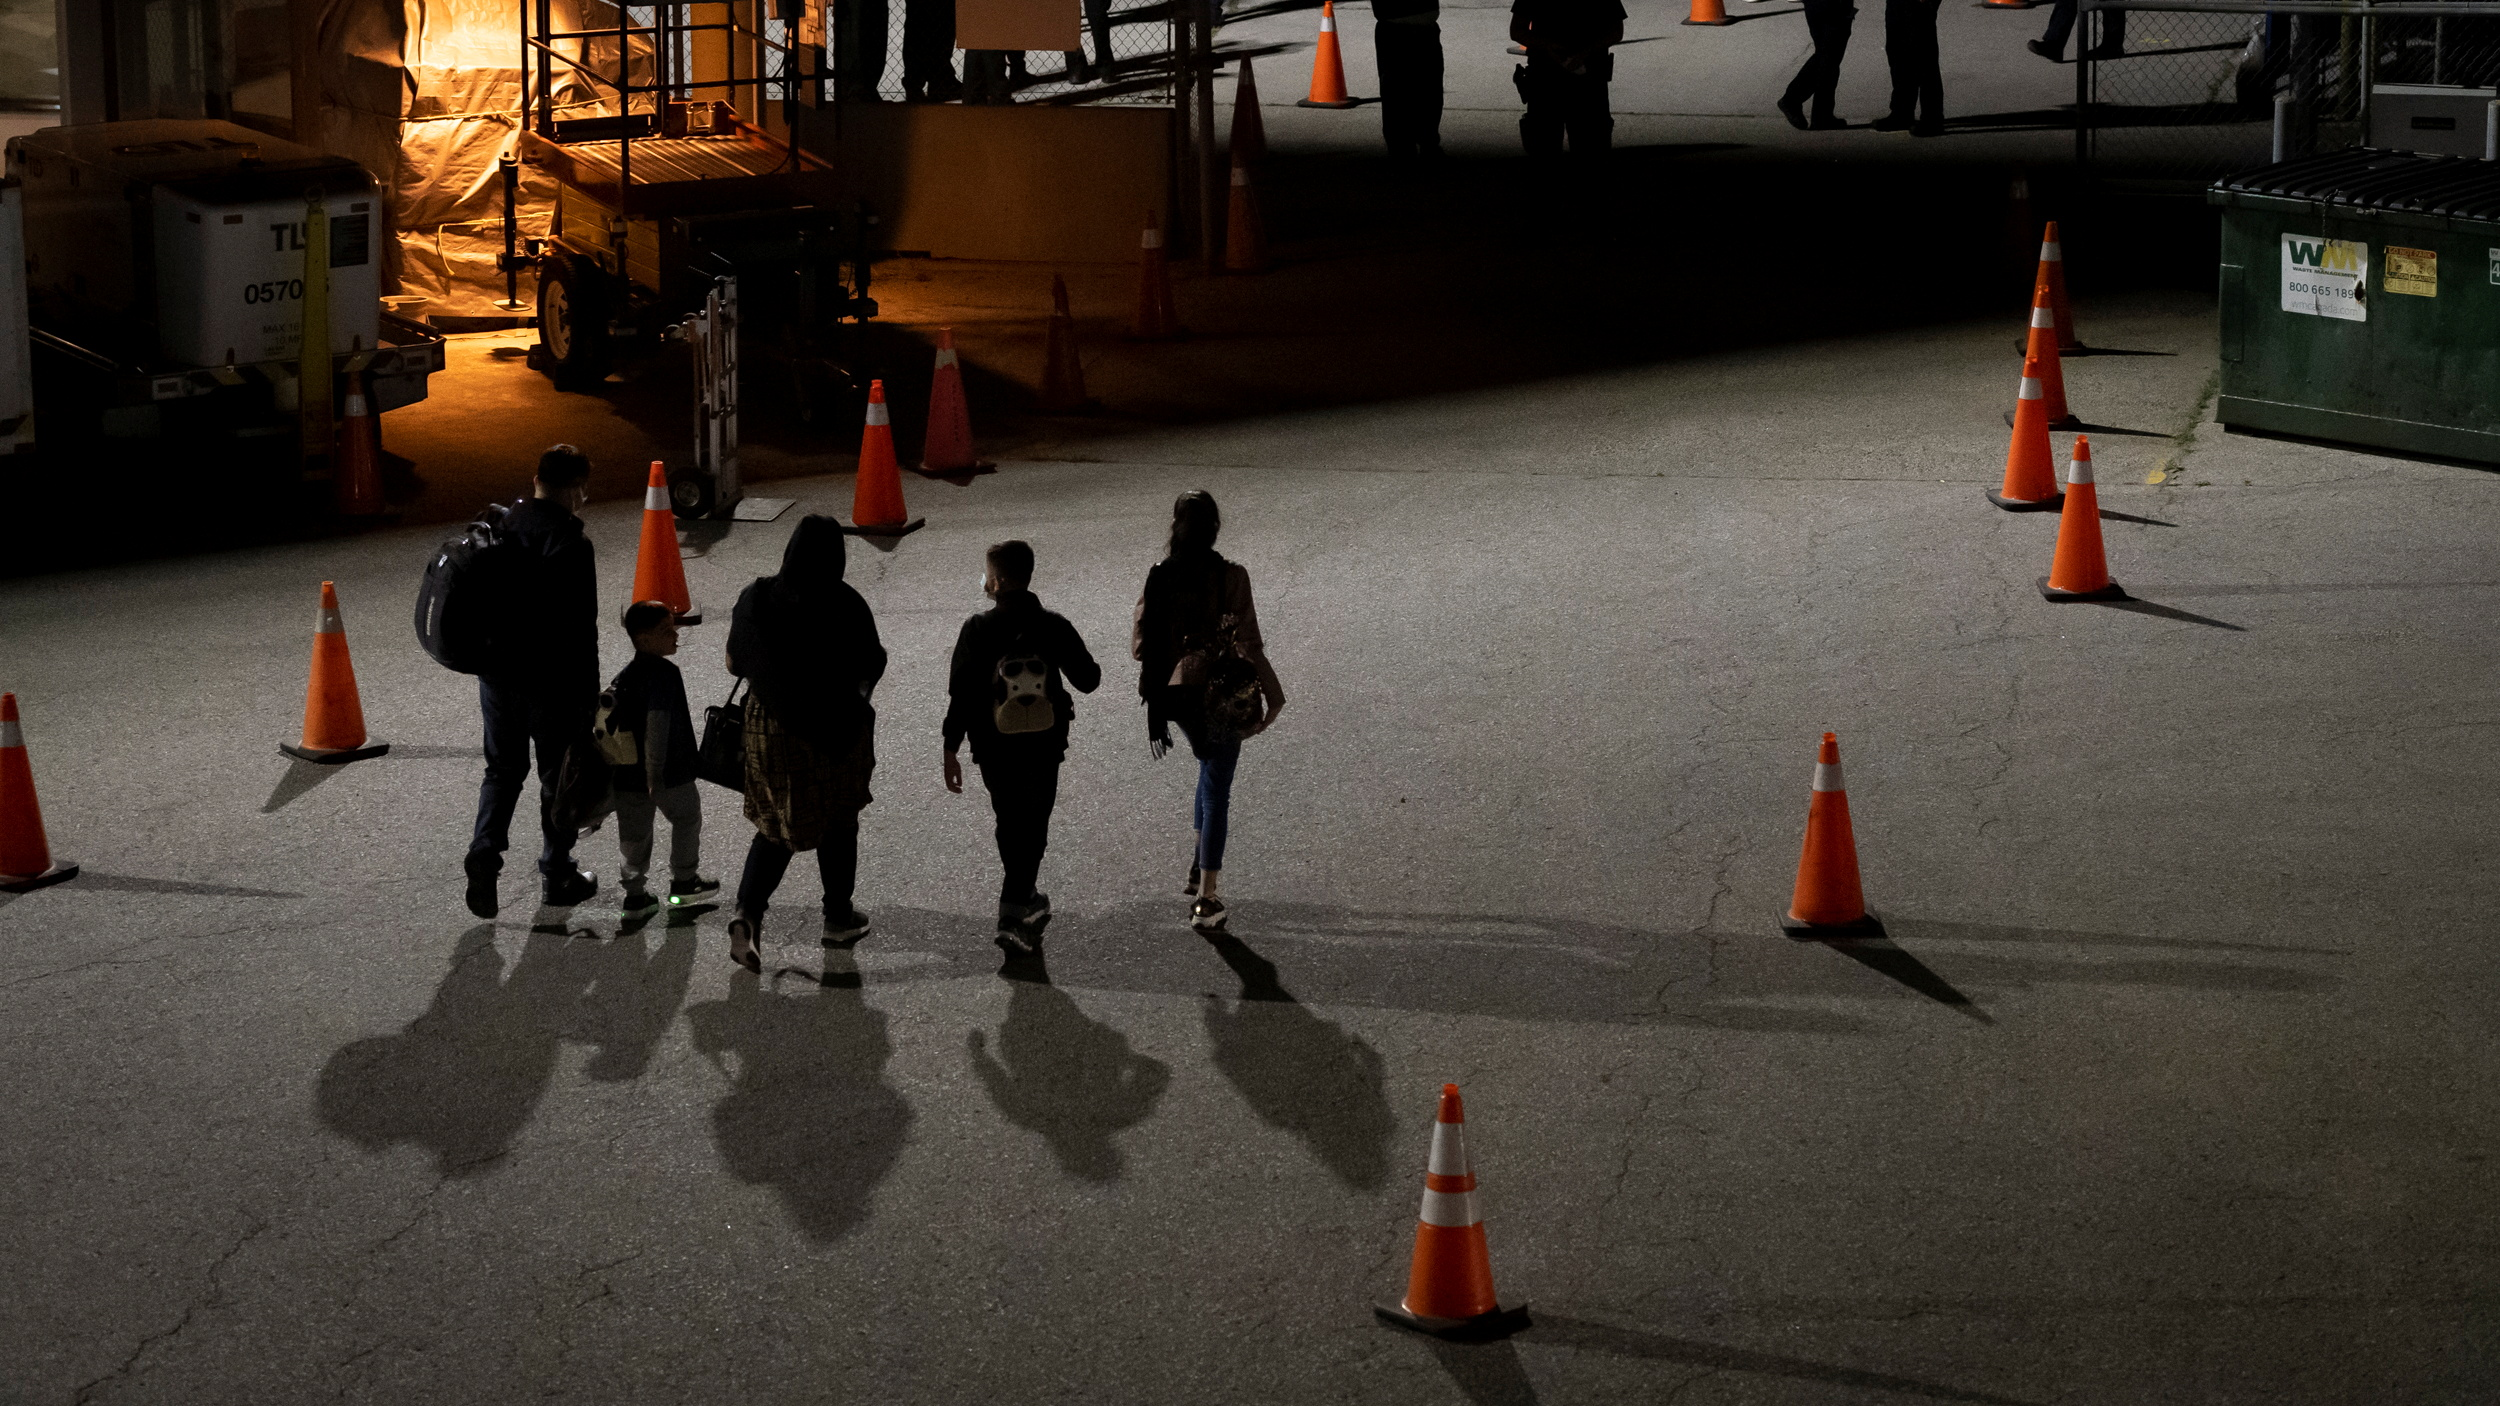 Afghan refugees who supported Canada's mission in Afghanistan walk on the tarmac after arriving in Canada at Toronto Pearson International Airport in Mississauga, Ontario, Canada August 11, 2021. Cpl Rachael Allen/Canadian Forces Combat Camera/Handout via REUTERS.